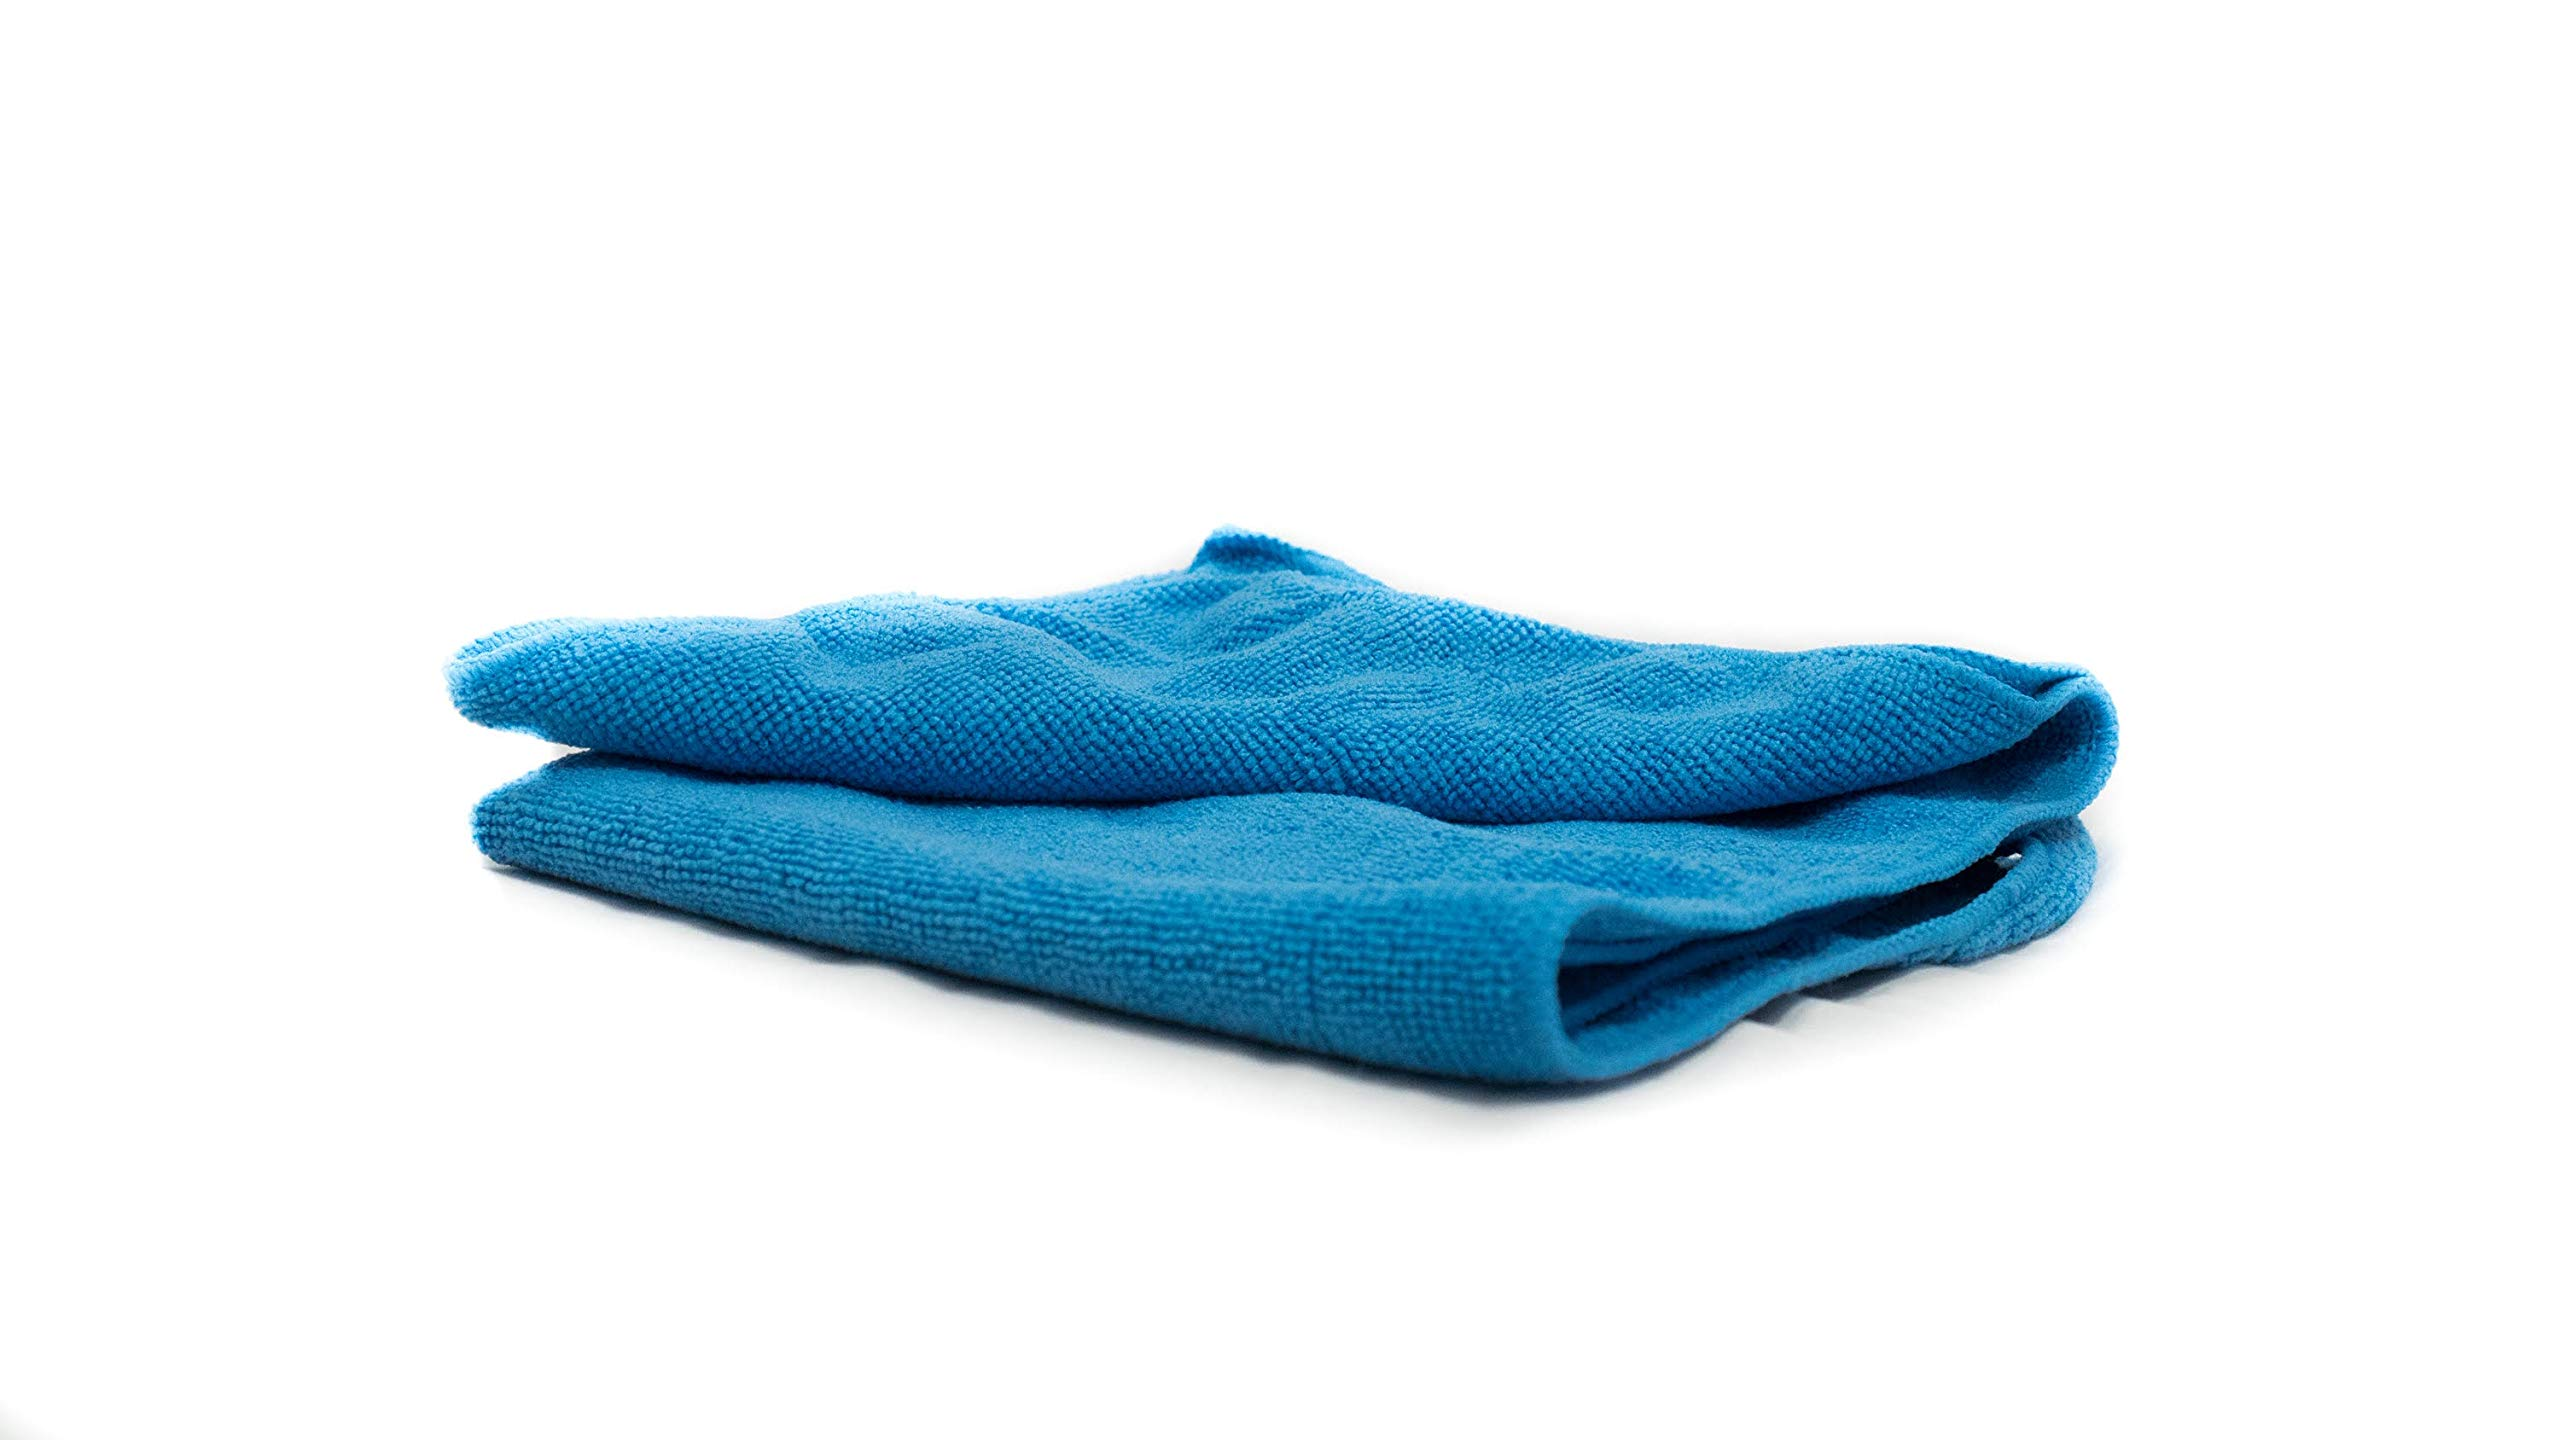 Xtreme Auto Supplies Commercial Grade All-Purpose Microfiber Towels - Blue (12 Pack) (14.5 in. x 24 in.)